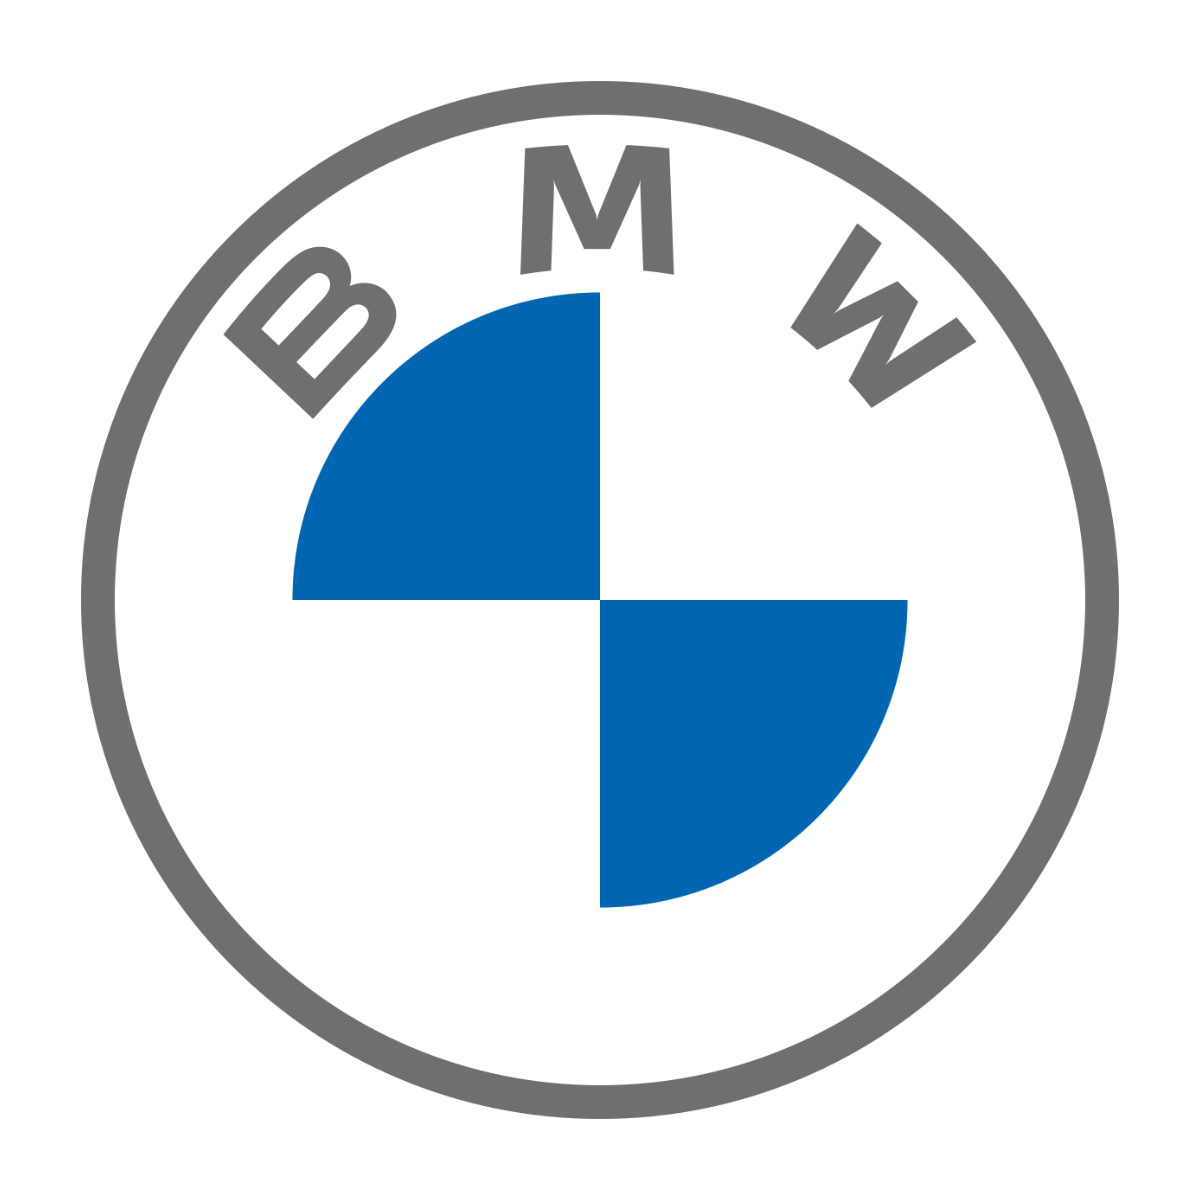 bmw-logo-2020-blue-white-grey